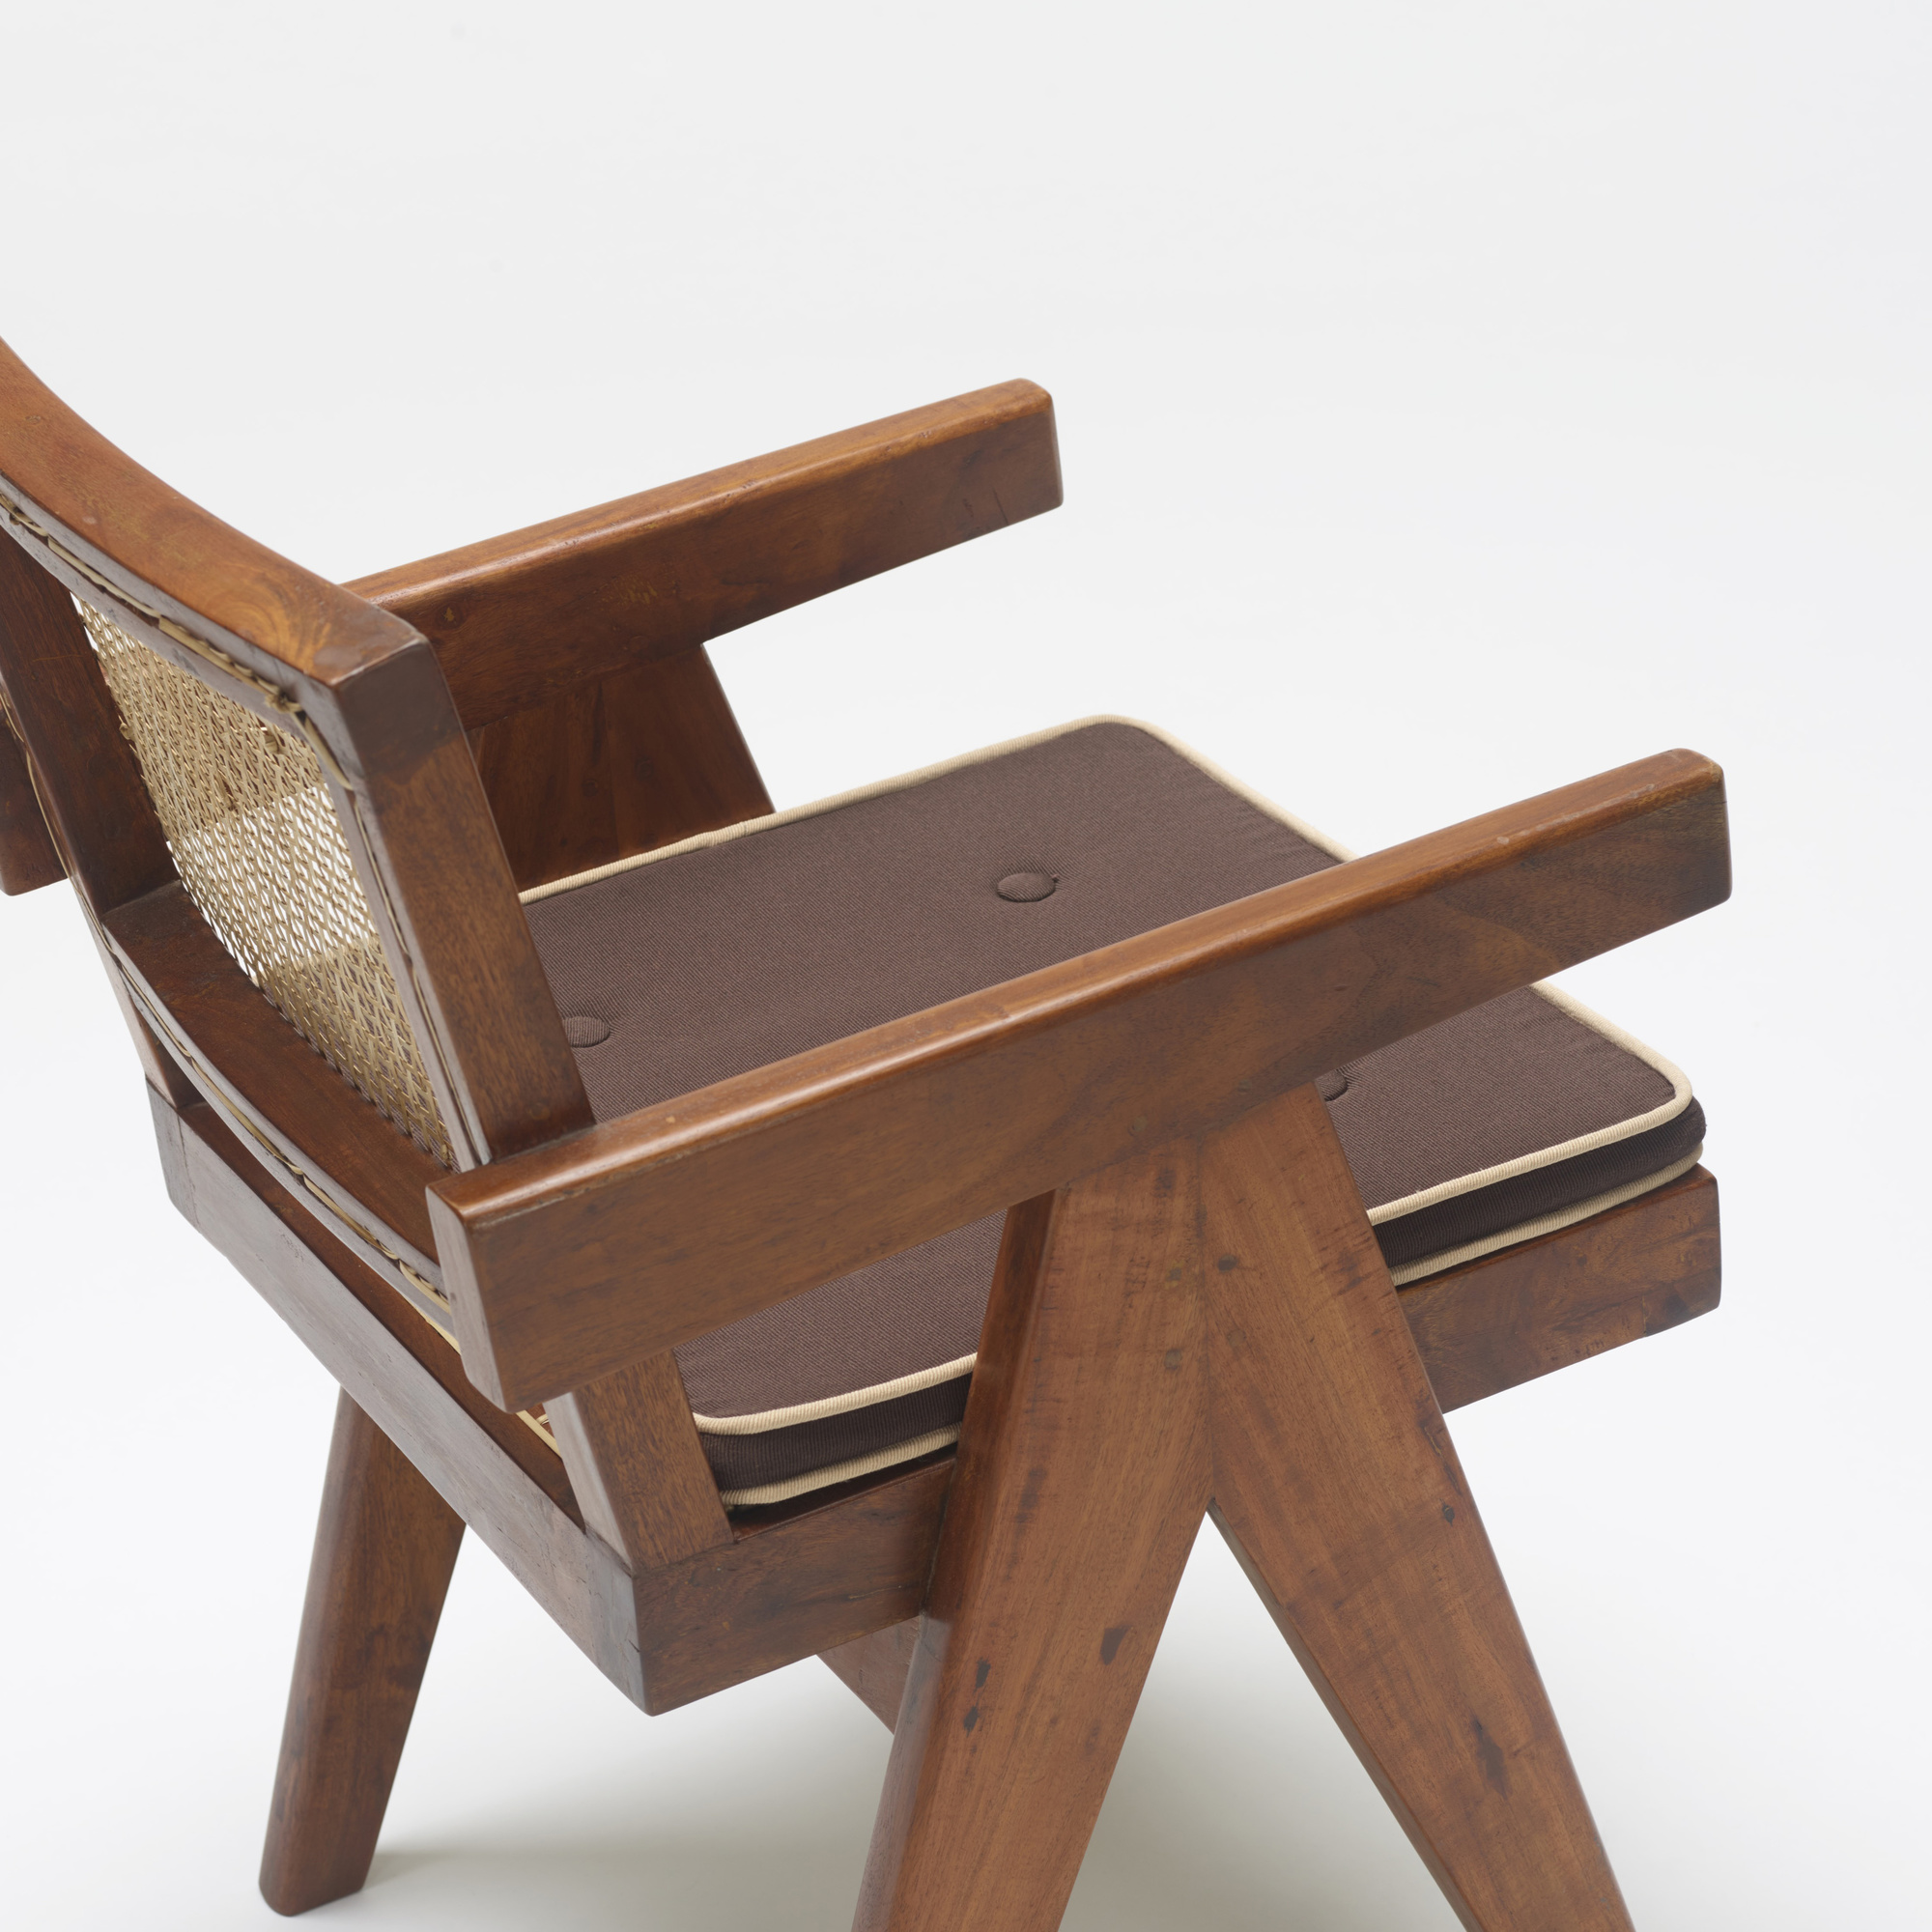 120: Pierre Jeanneret / armchair from Chadigarh (3 of 3)